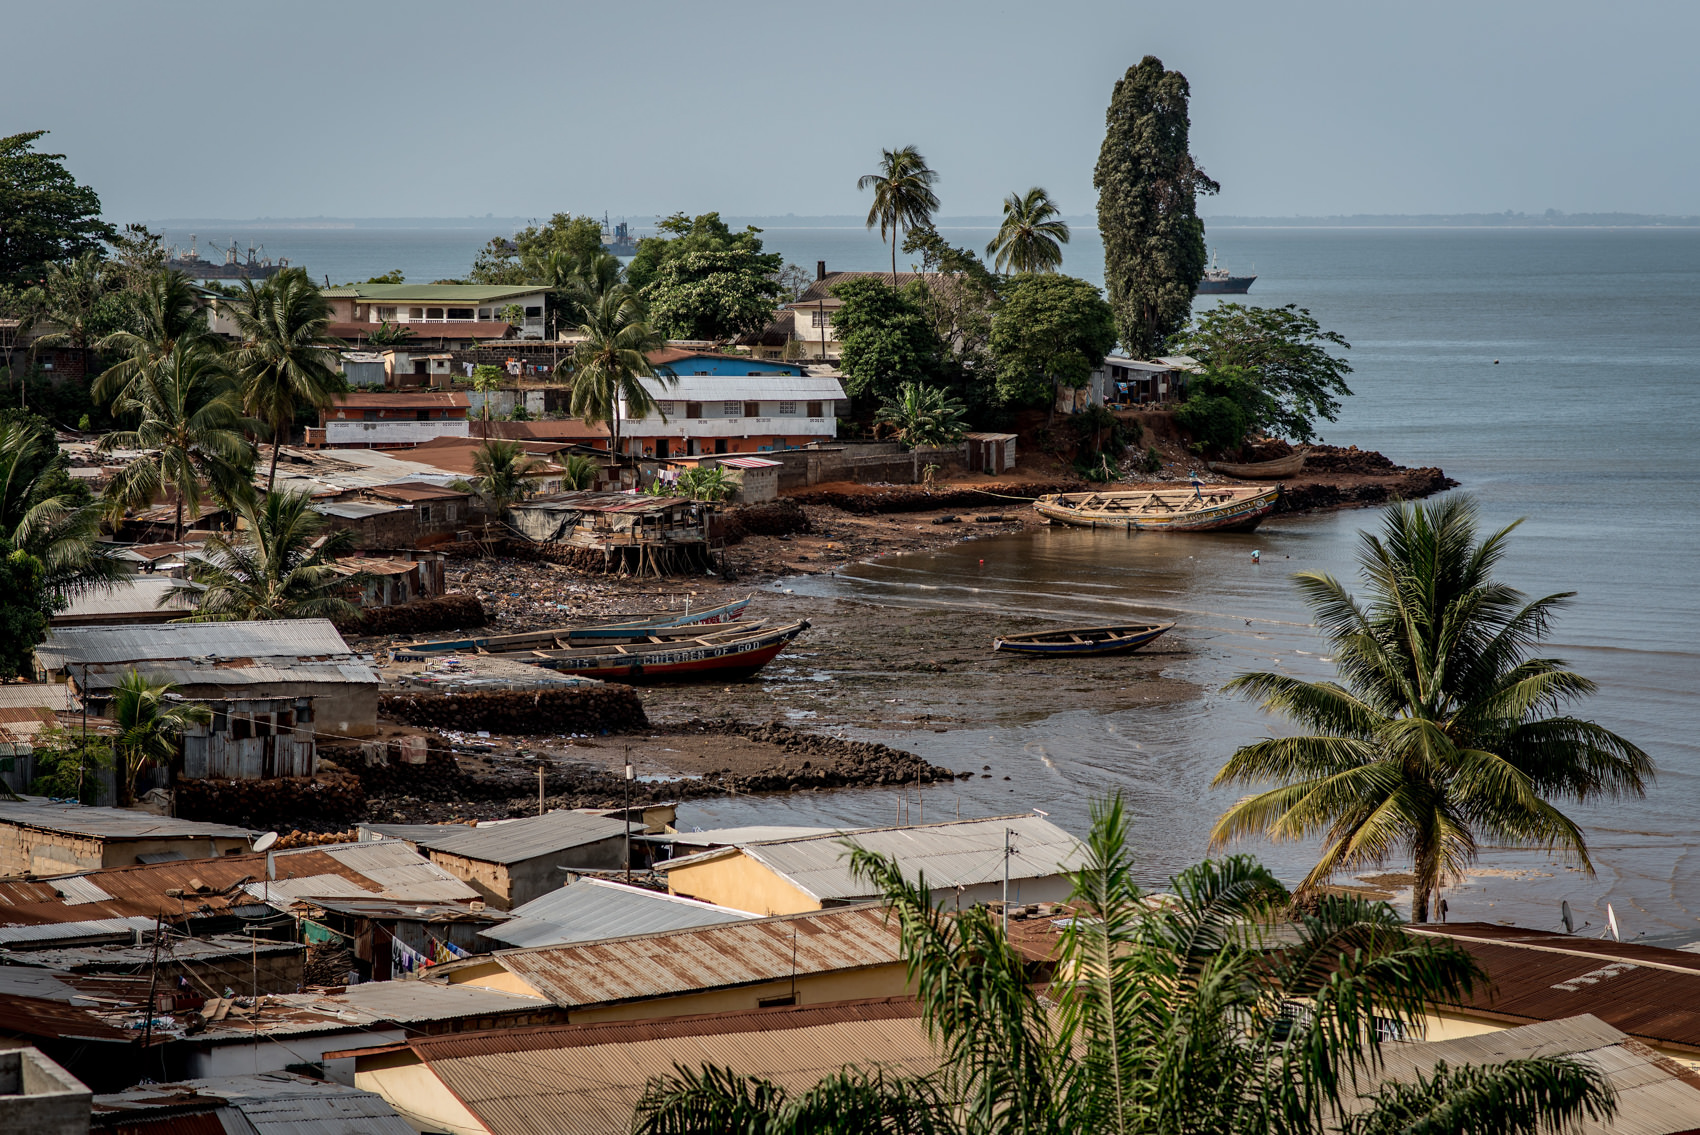 sierra-leone-wedding-matt-badenoch-photography-snap-13.jpg